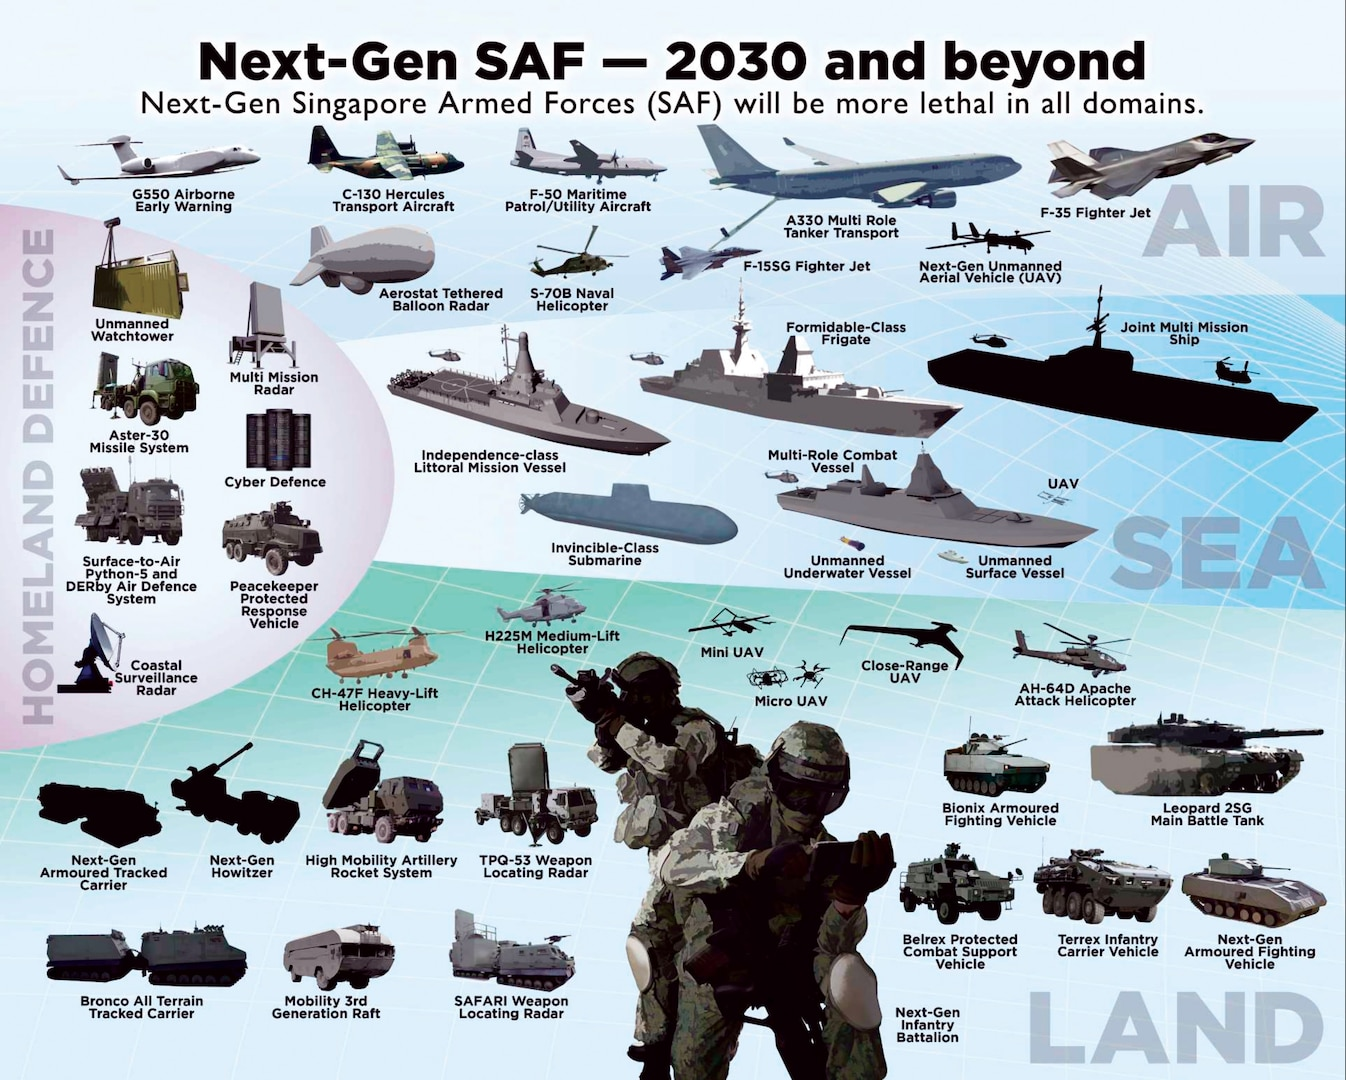 Singapore Ministry of Defense https://www.mindef.gov.sg/web/wcm/connect/mindef/be78ae40-55dd-4086-bd7a-9f893b620197/8/next-generation-saf2.jpg?MOD=AJPERES